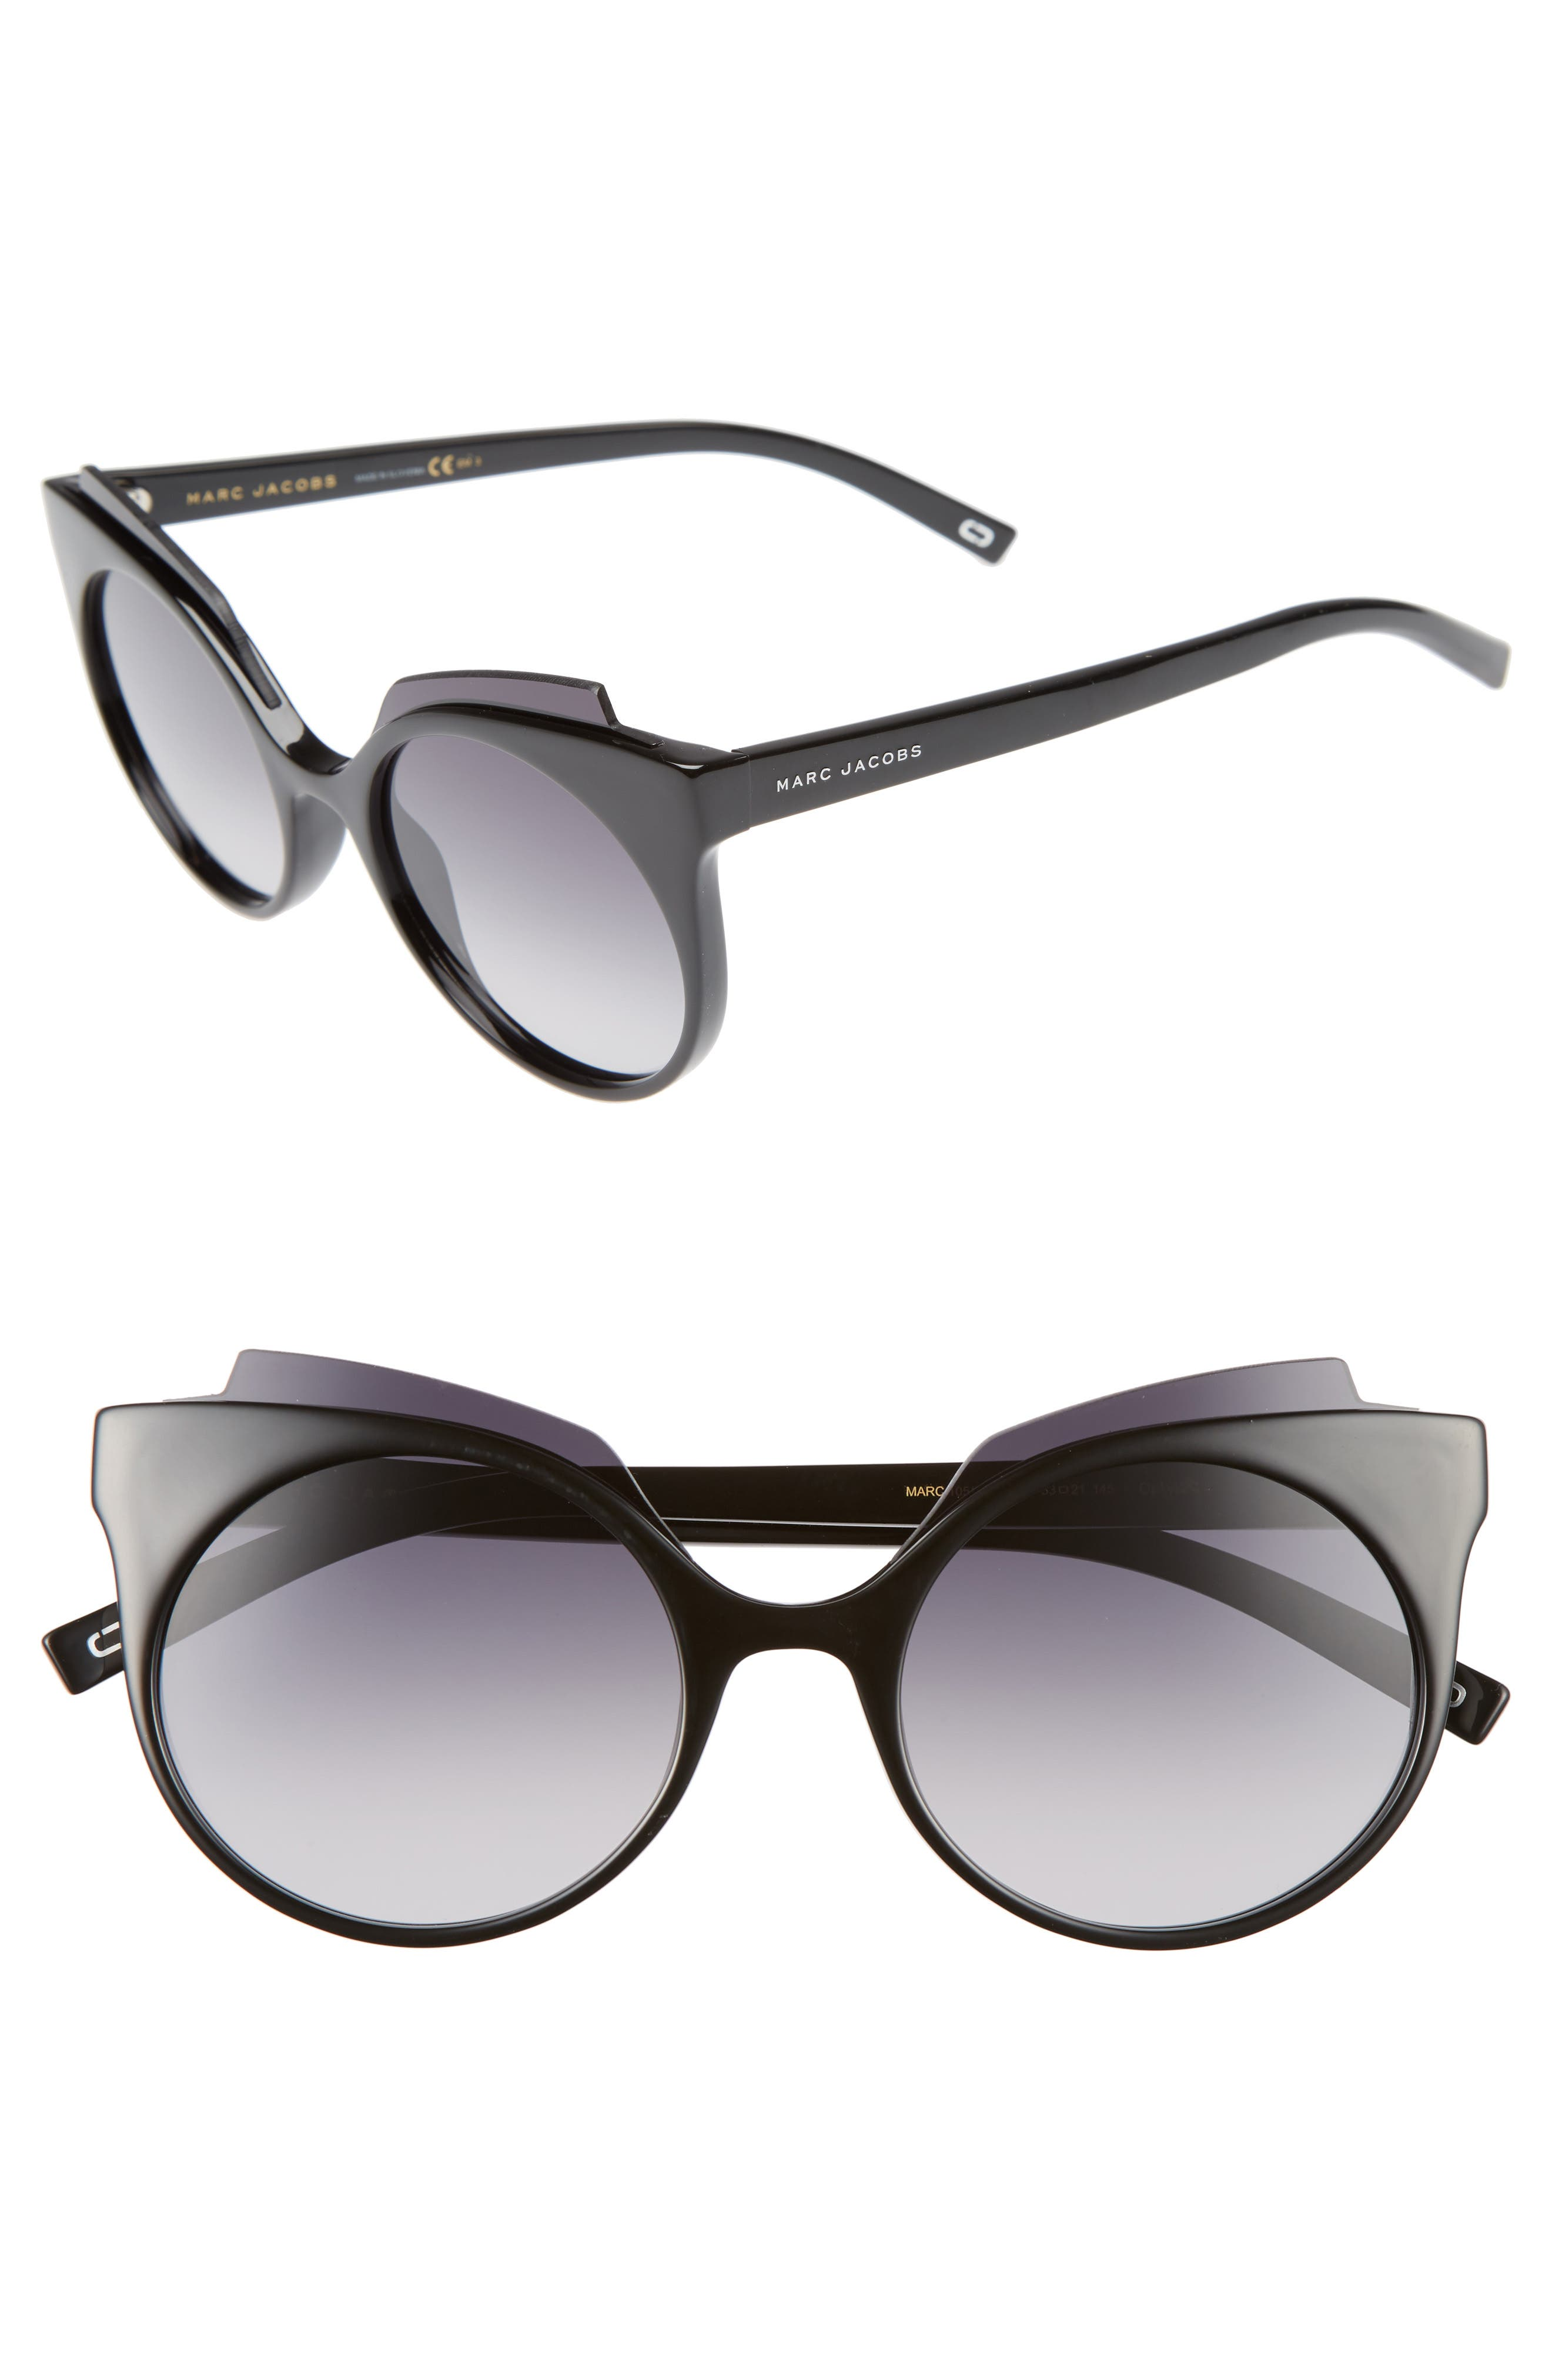 Alternate Image 1 Selected - MARC JACOBS 53mm Oversized Sunglasses